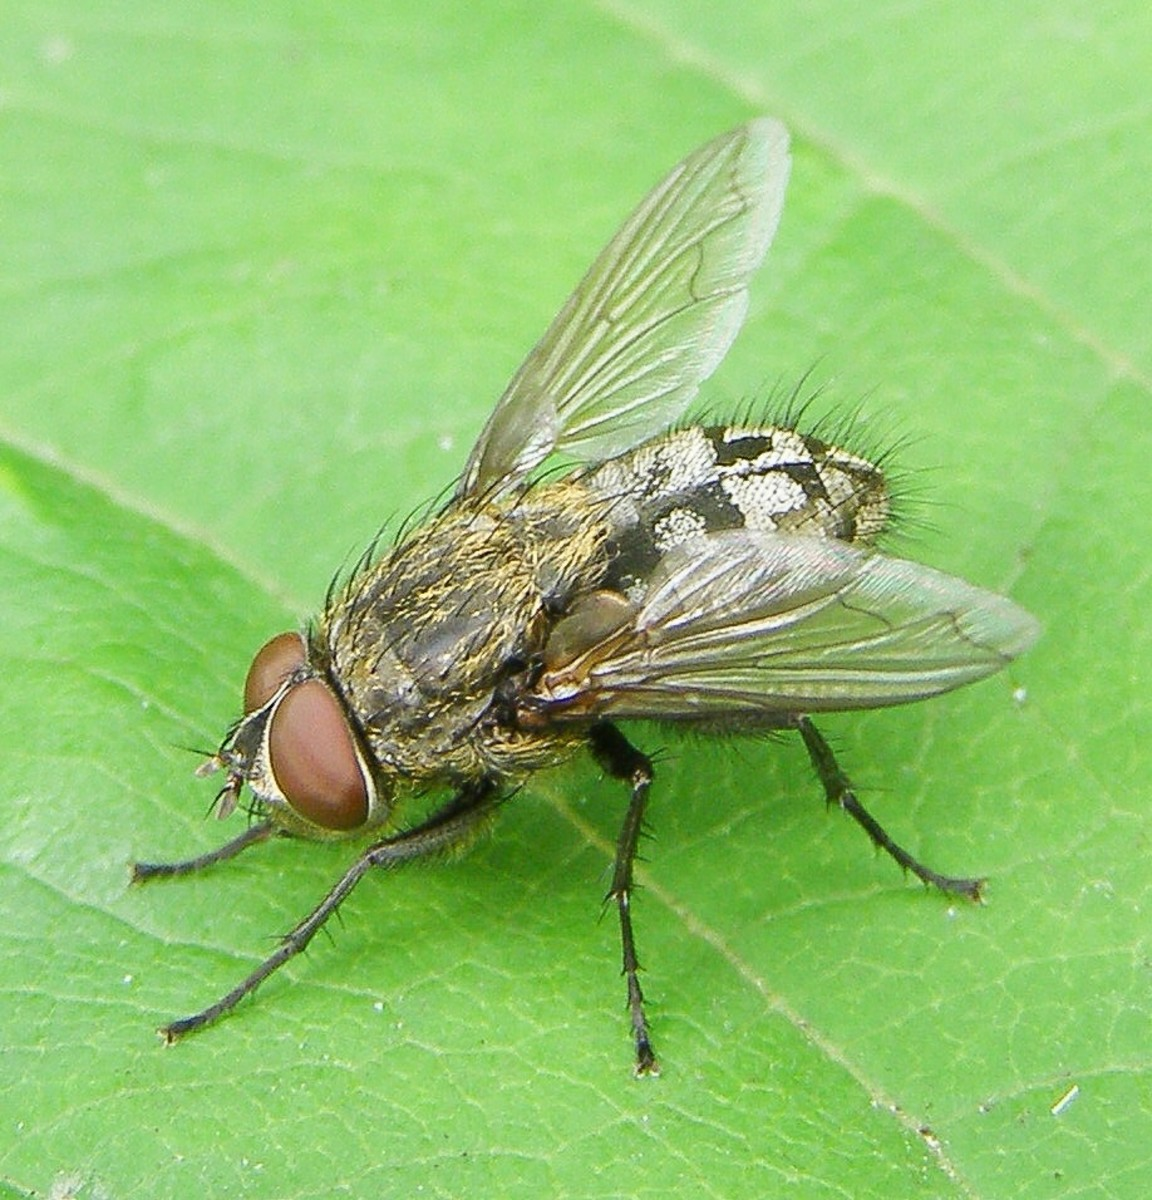 A male cluster fly (genus Pollenia)